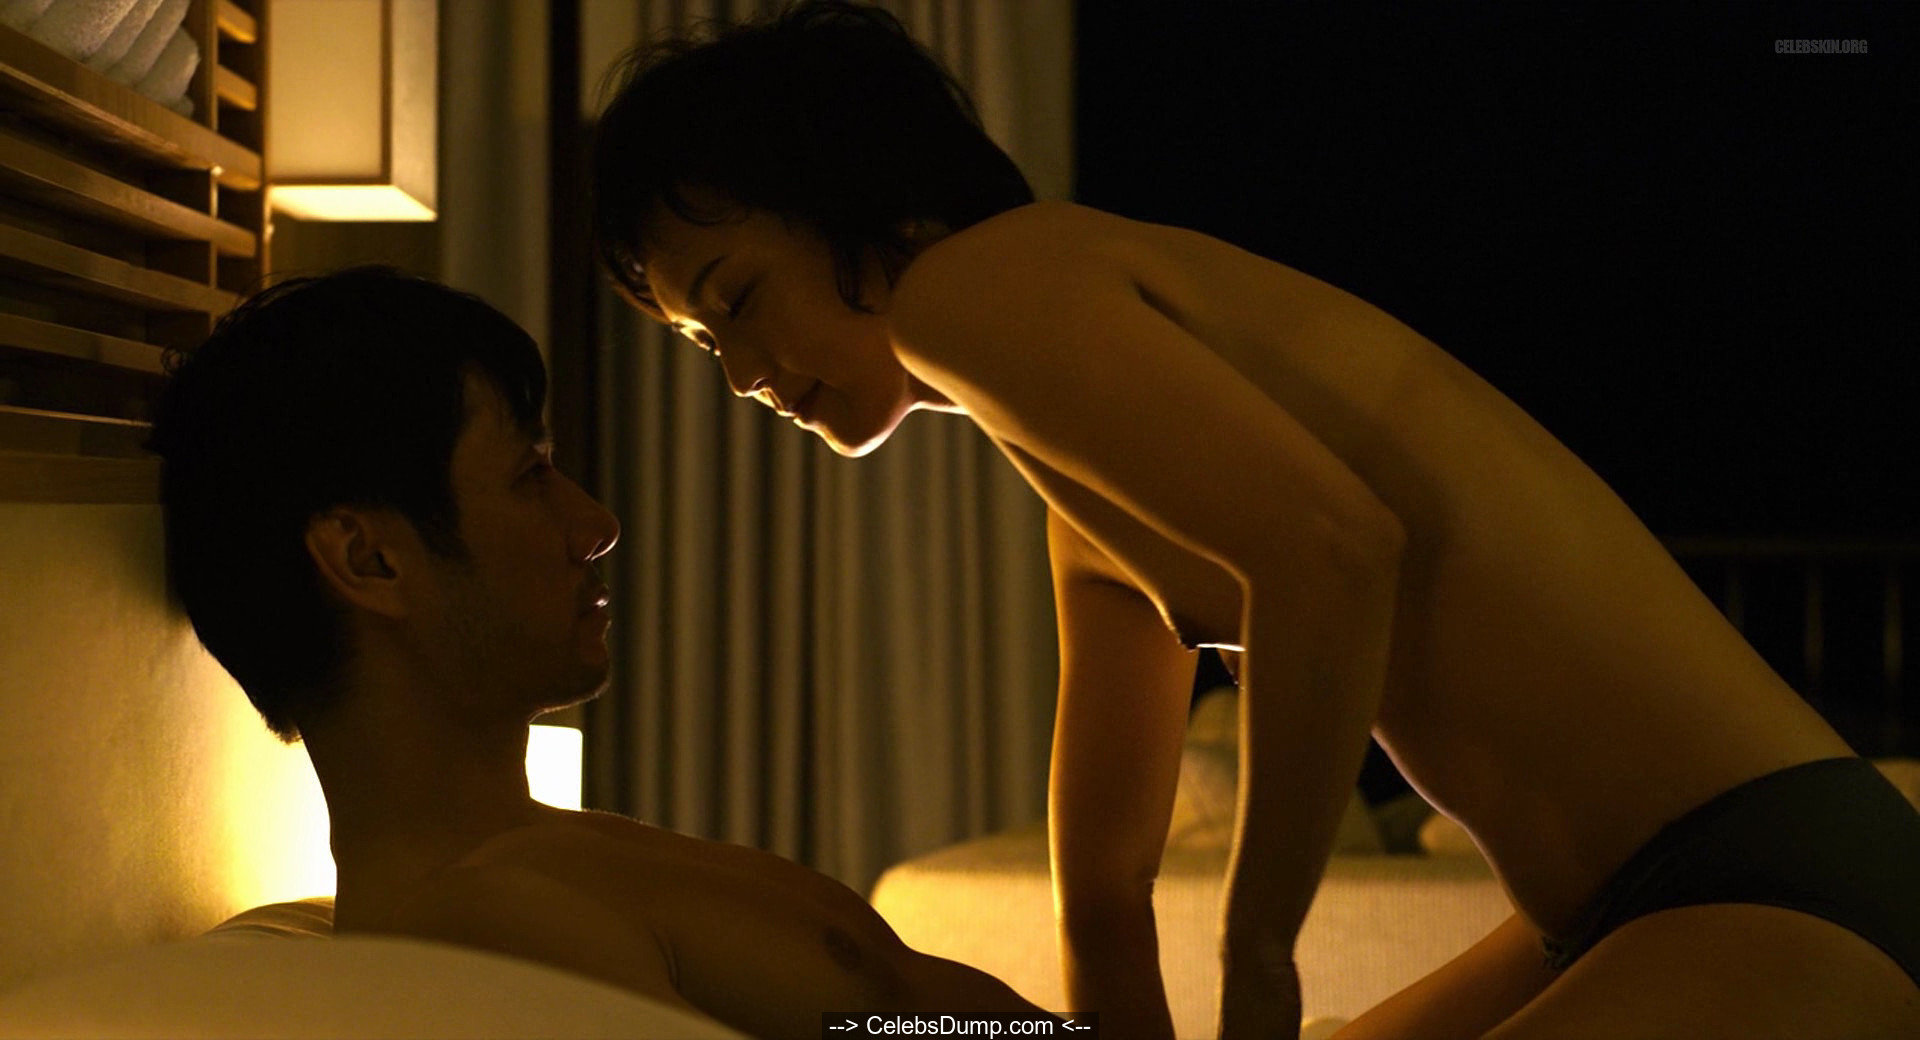 Asian Picture Sex Scenes Tokyo Kinky Sex, Erotic And Adult Japan